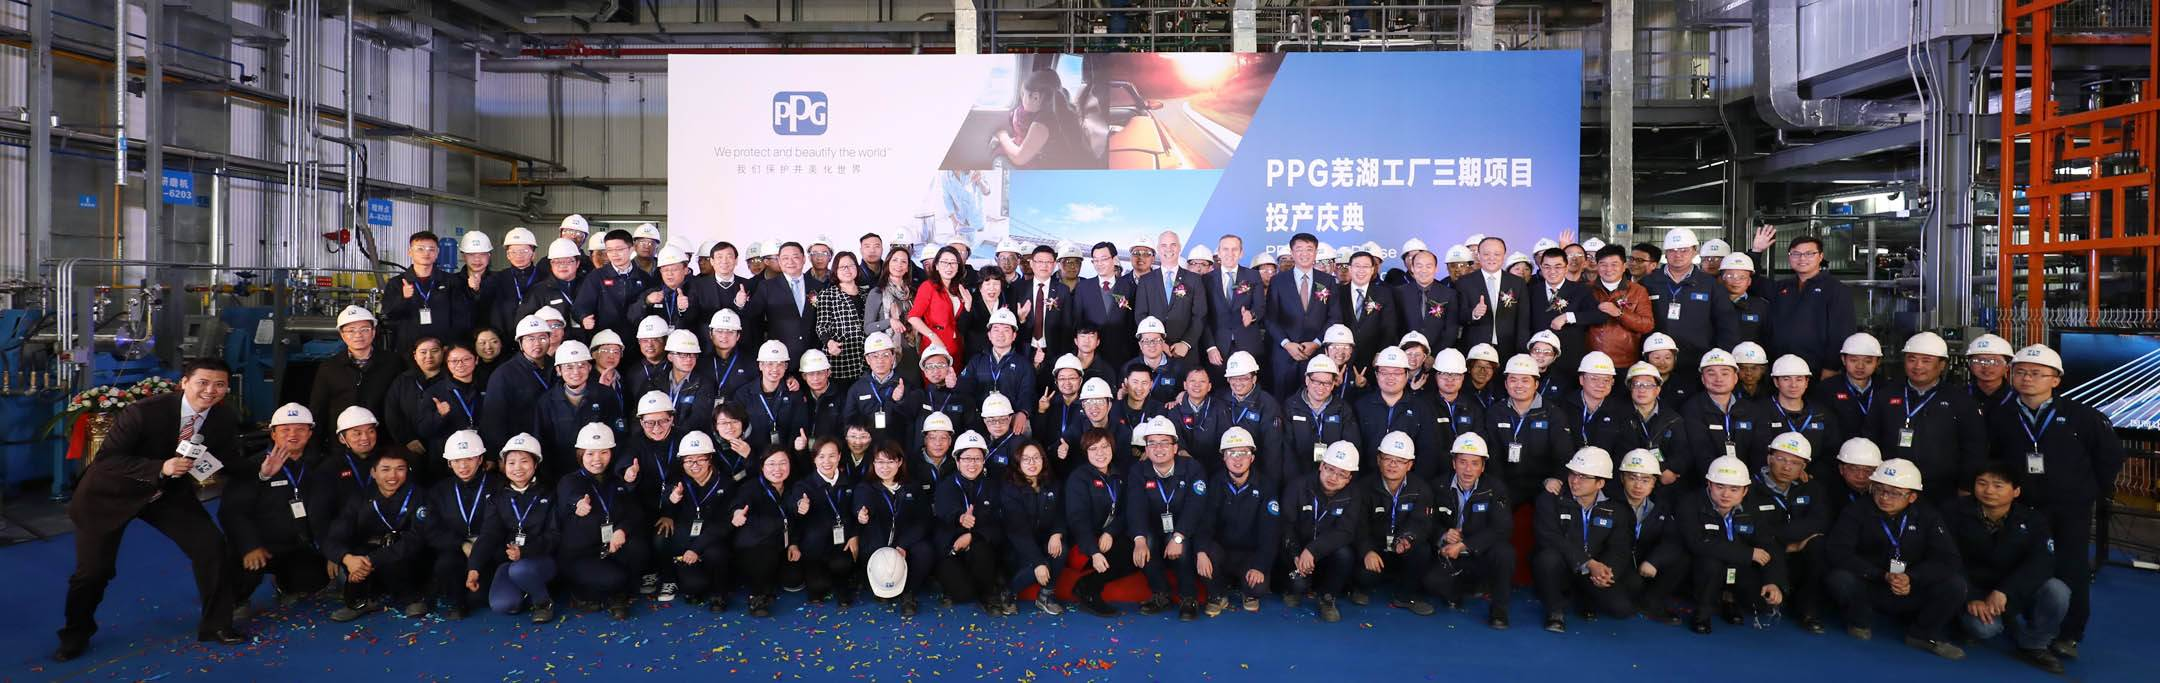 ppg-wuhu-employees-and-guests-are-celebrating-the-opening-of-high-perfor